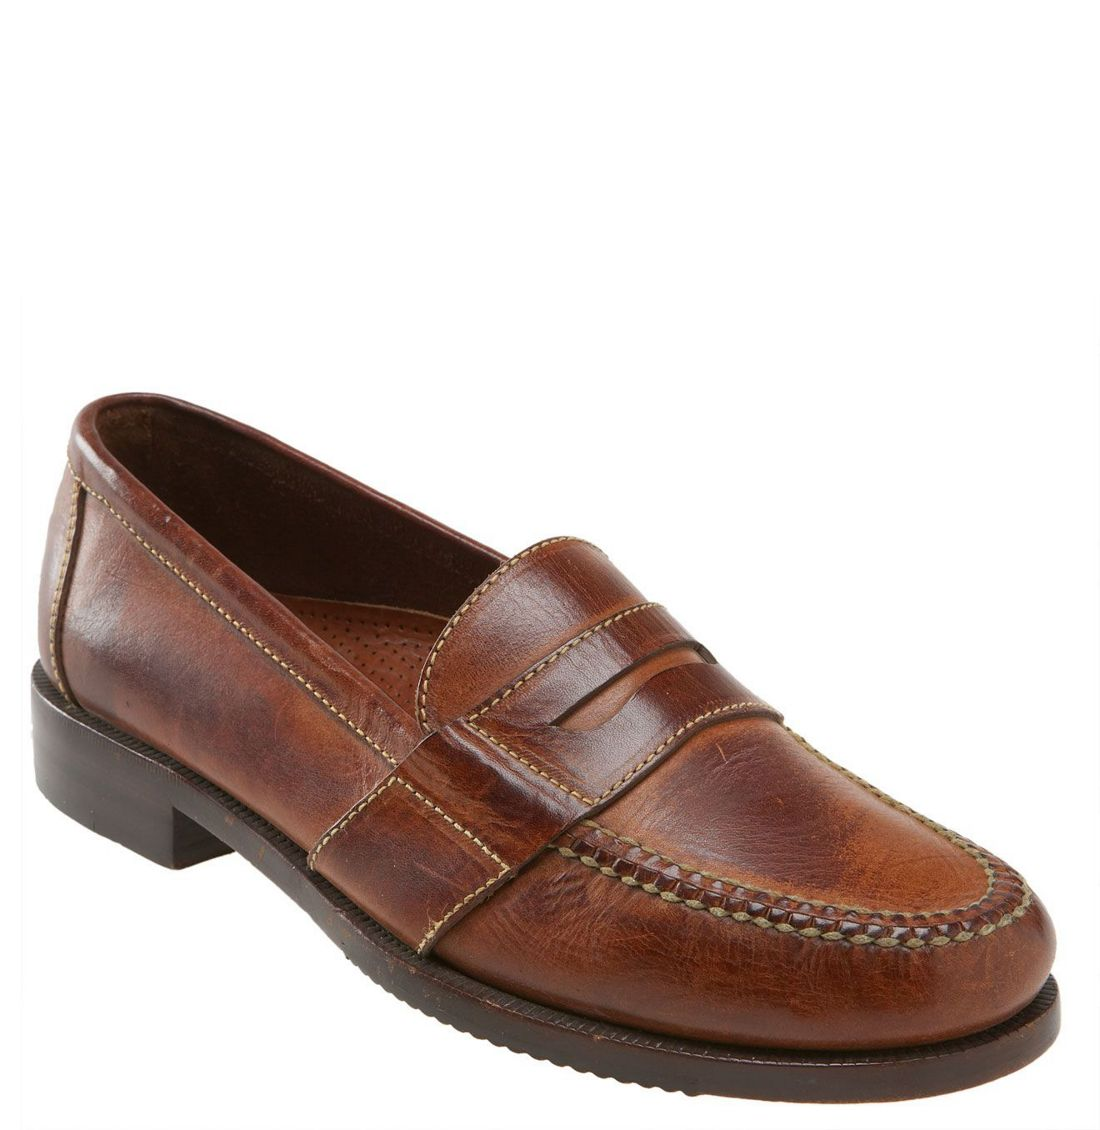 Nordstrom Cole Haan Shoes Mens